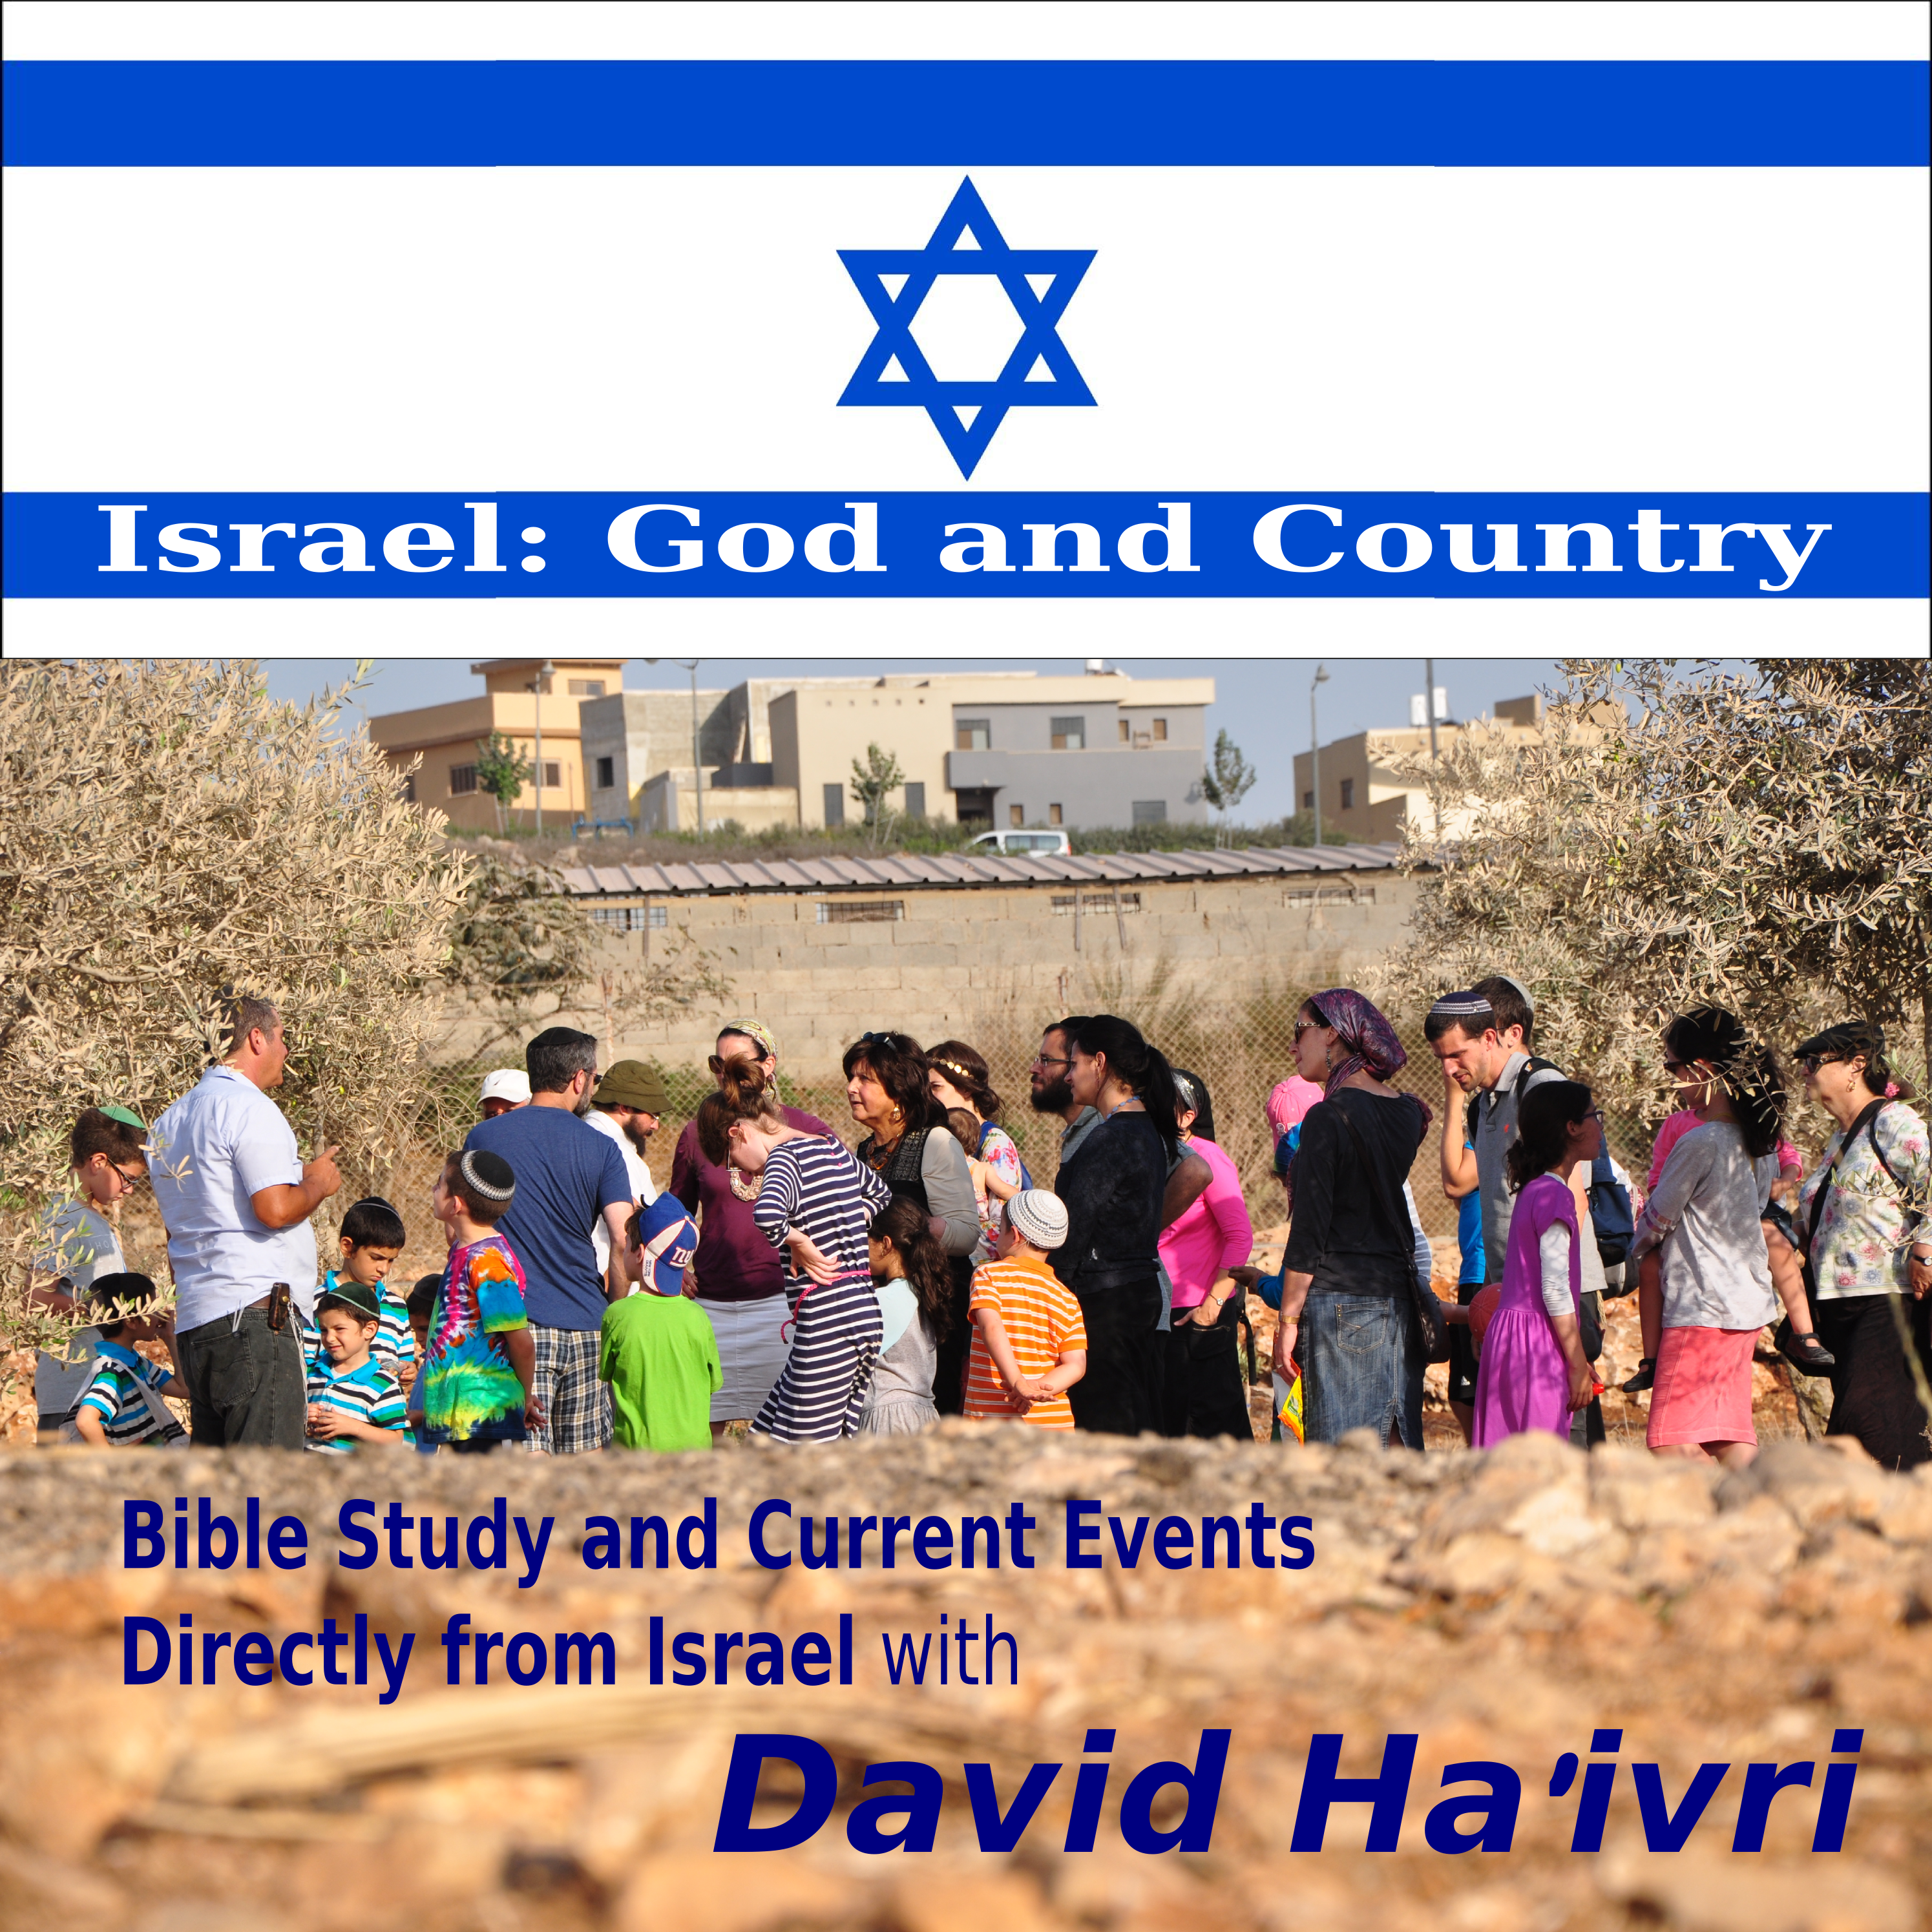 Israel: God and Country with David Ha'ivri